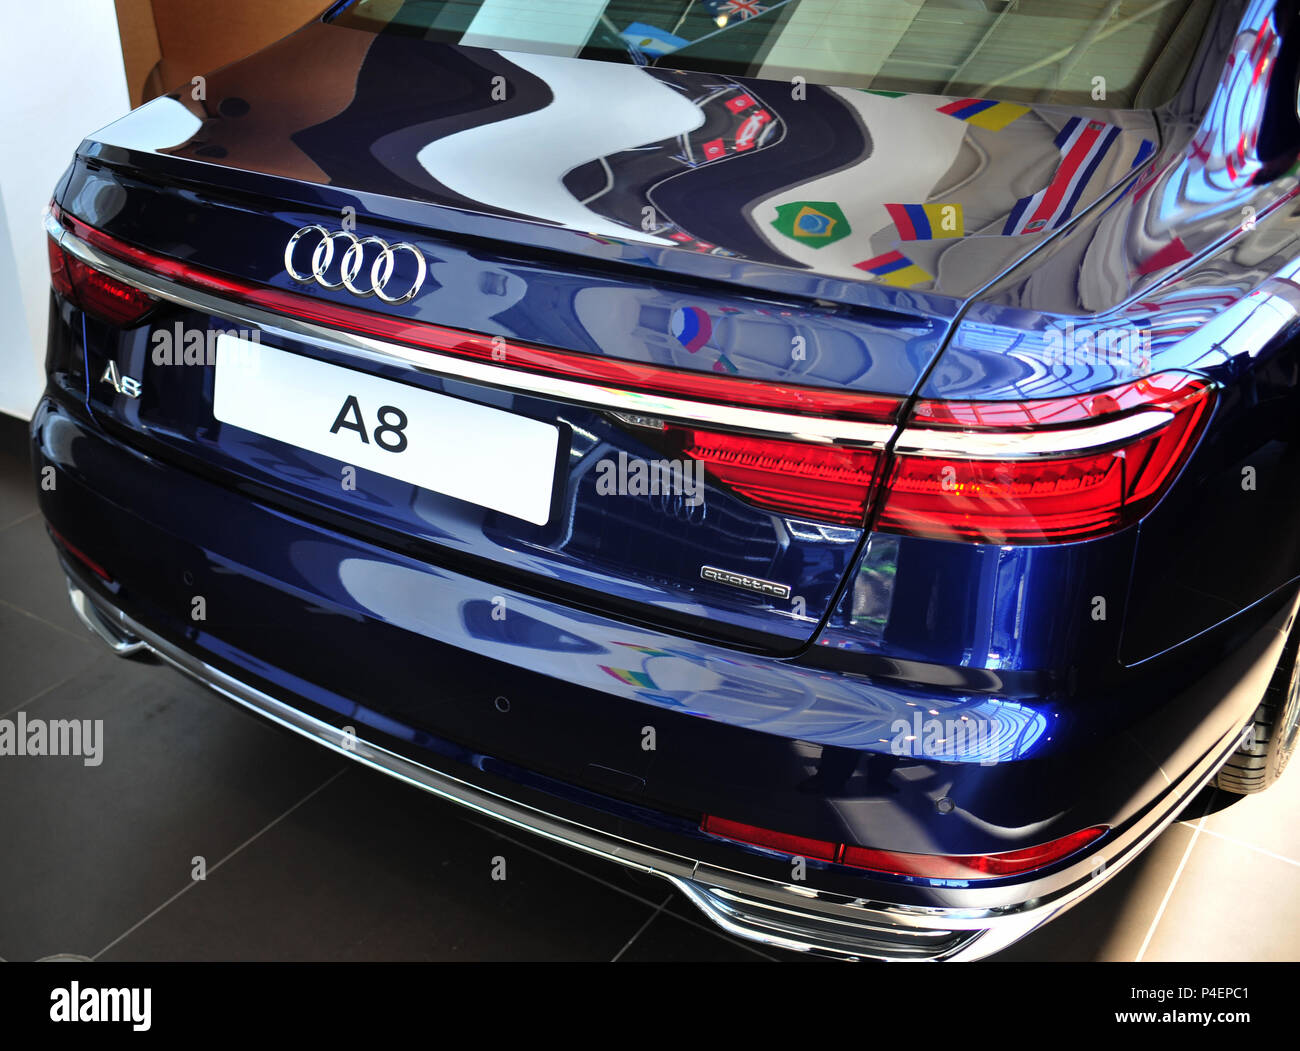 Rear View Of The Latest New Model Audi A8 Car On Sale At Audi